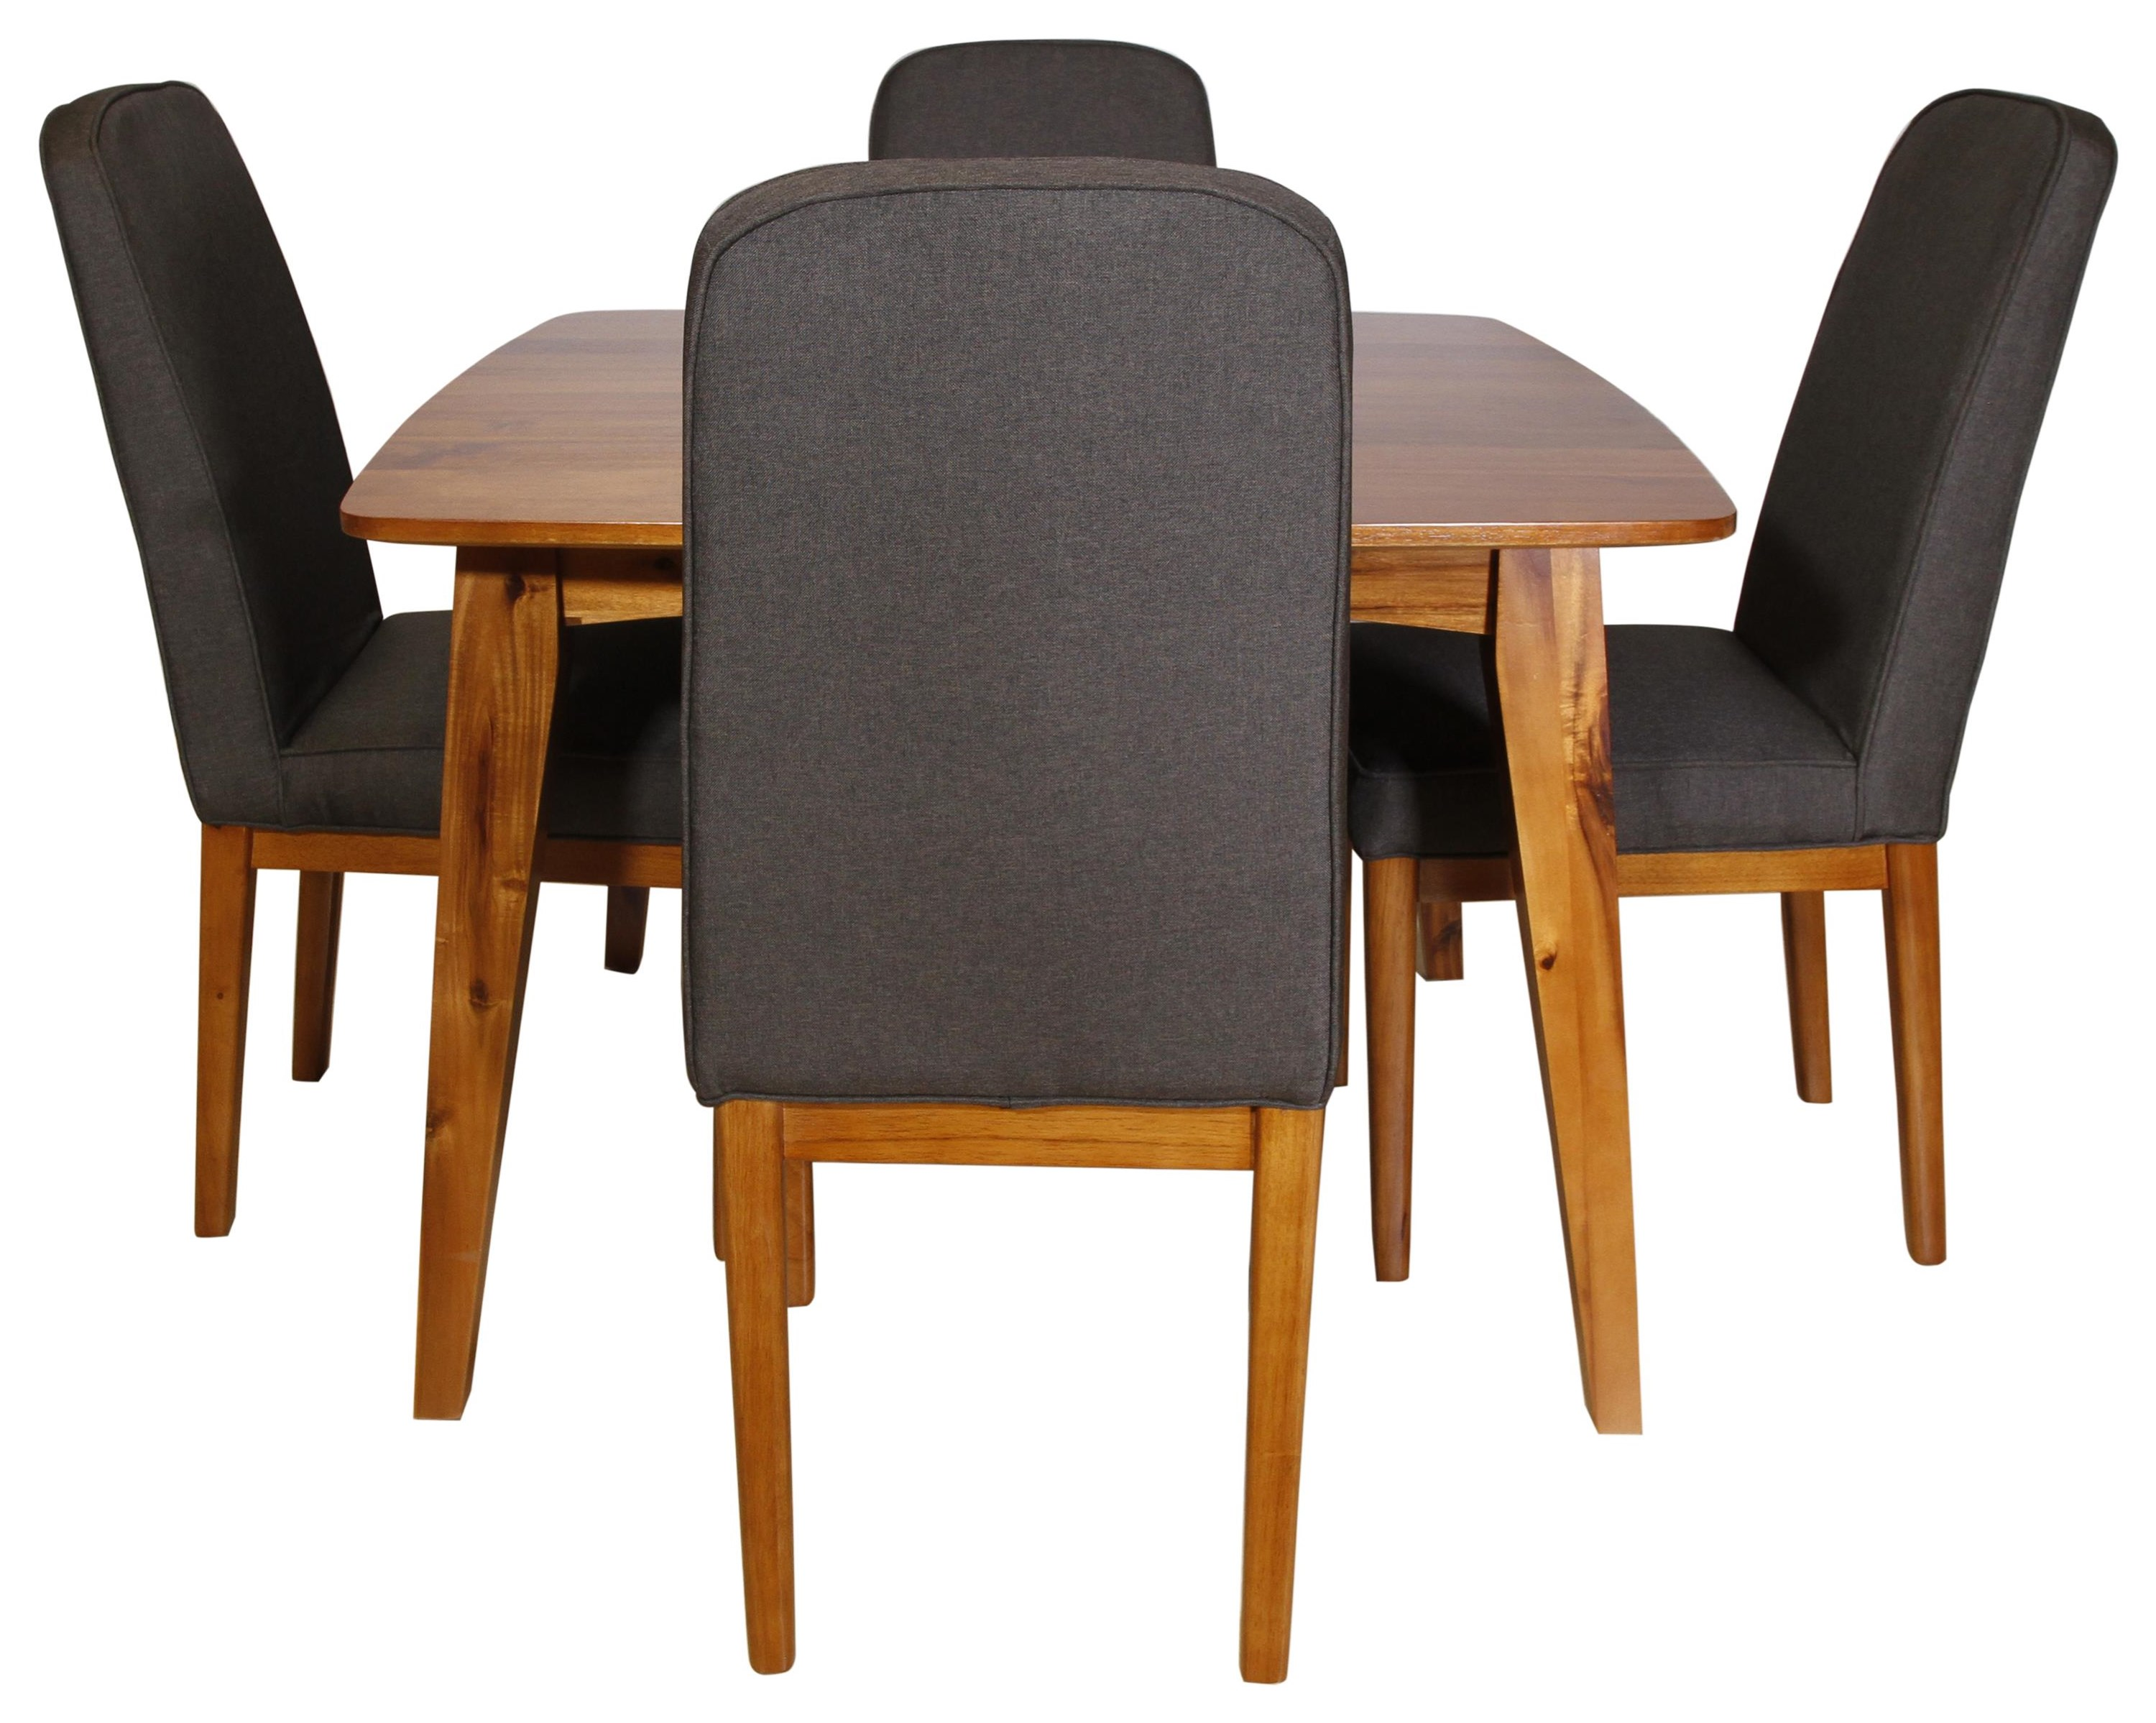 Berkeley 5 Piece Dining Set by Global Home at HomeWorld Furniture